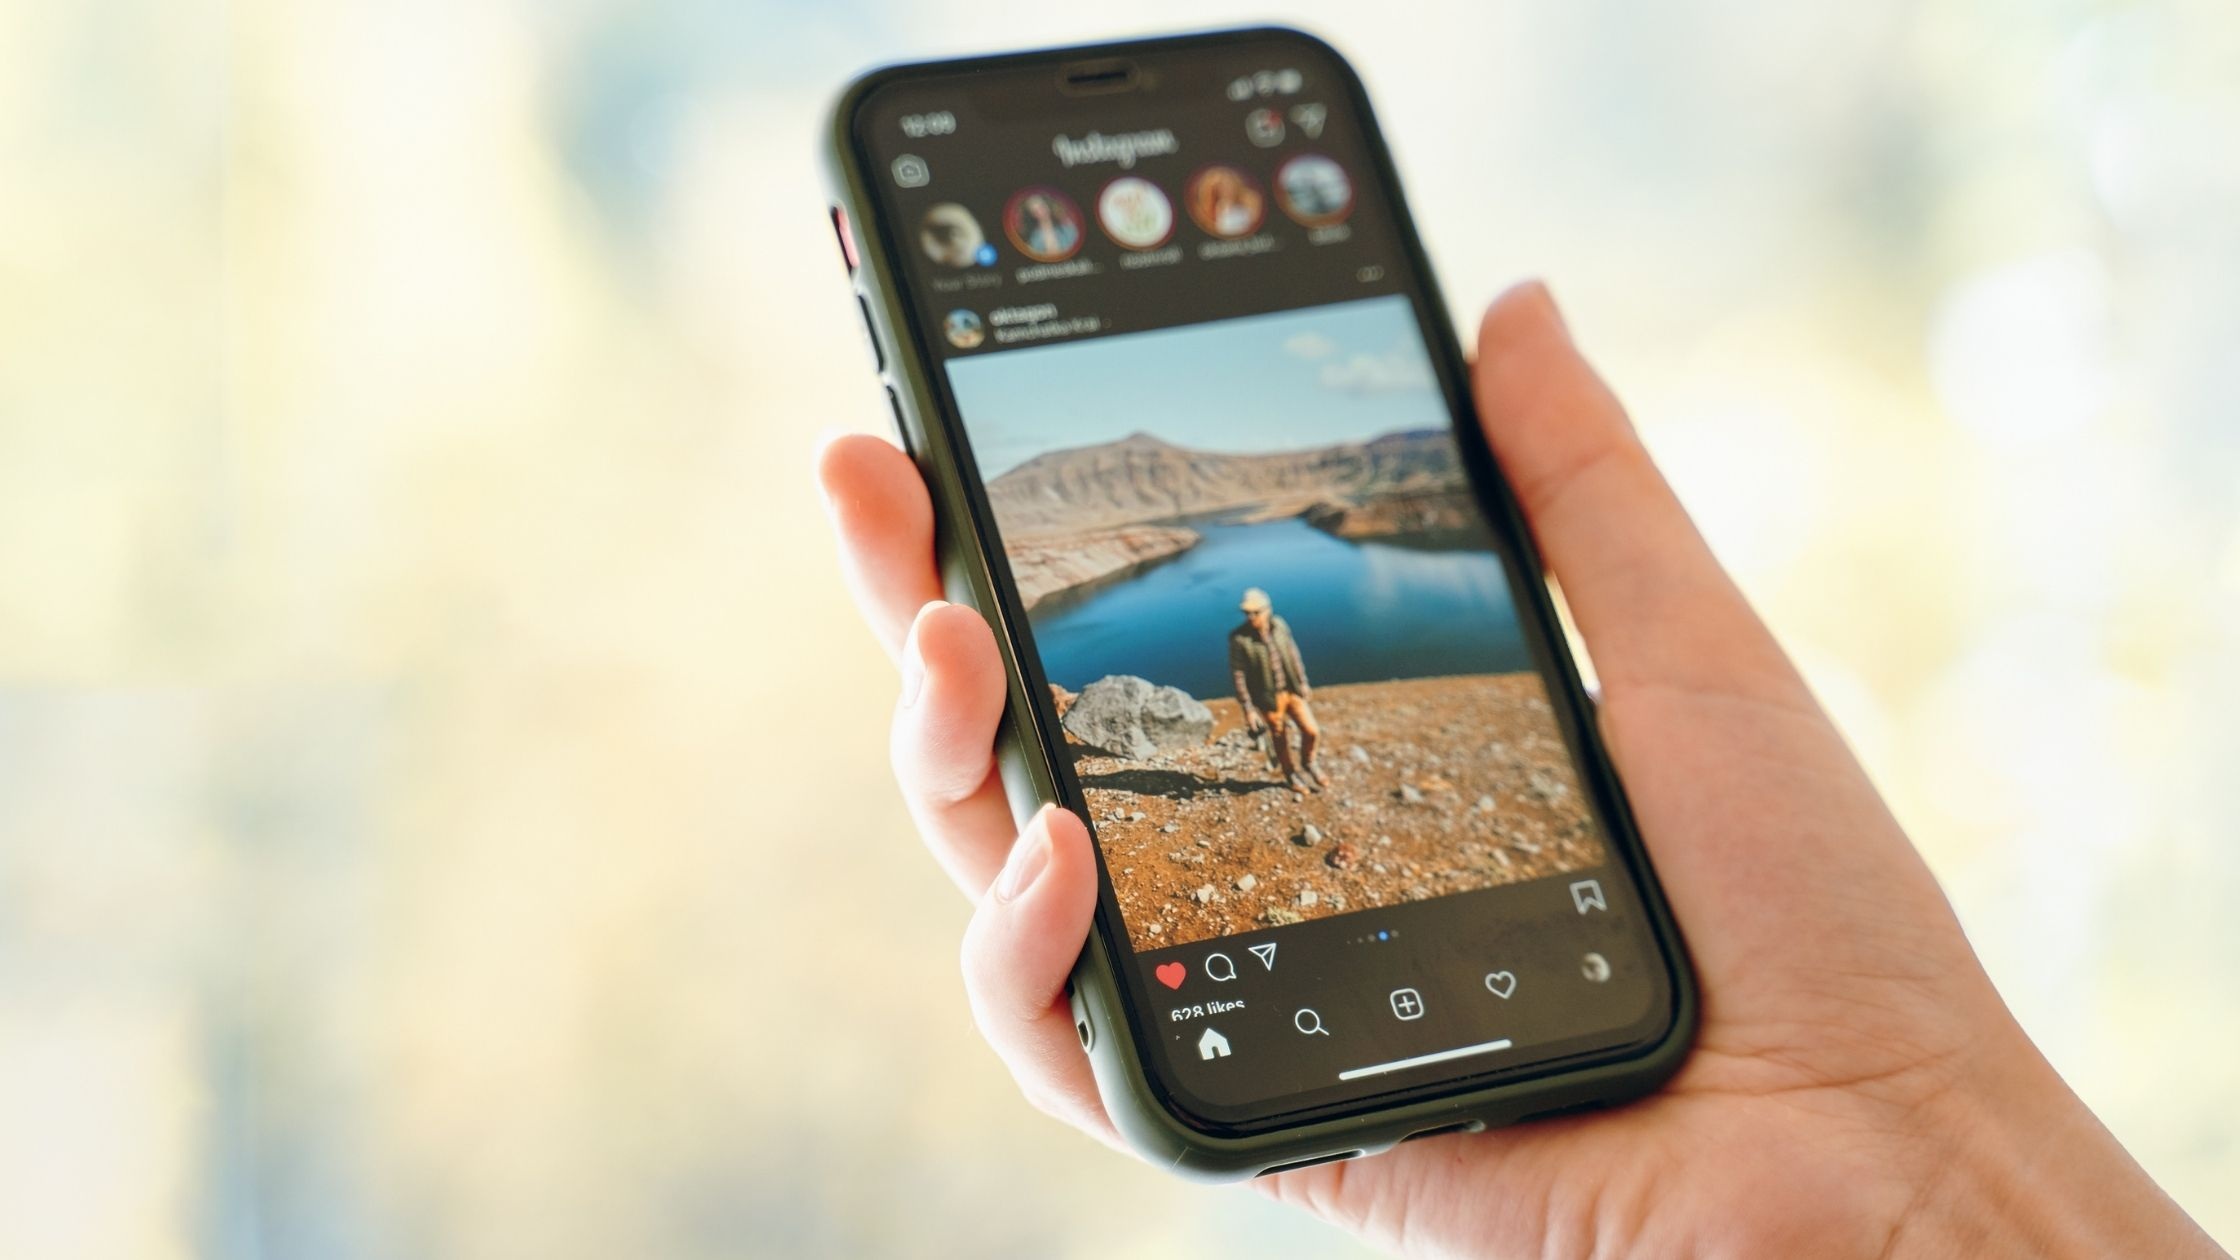 article 'How to run successful instagram ads' It's an image of a hand holding a mobile phone showing the Instagram application with some images visible in the image such as Instagram stories, image of a man walking near the lake, some text and icons inside instagram application